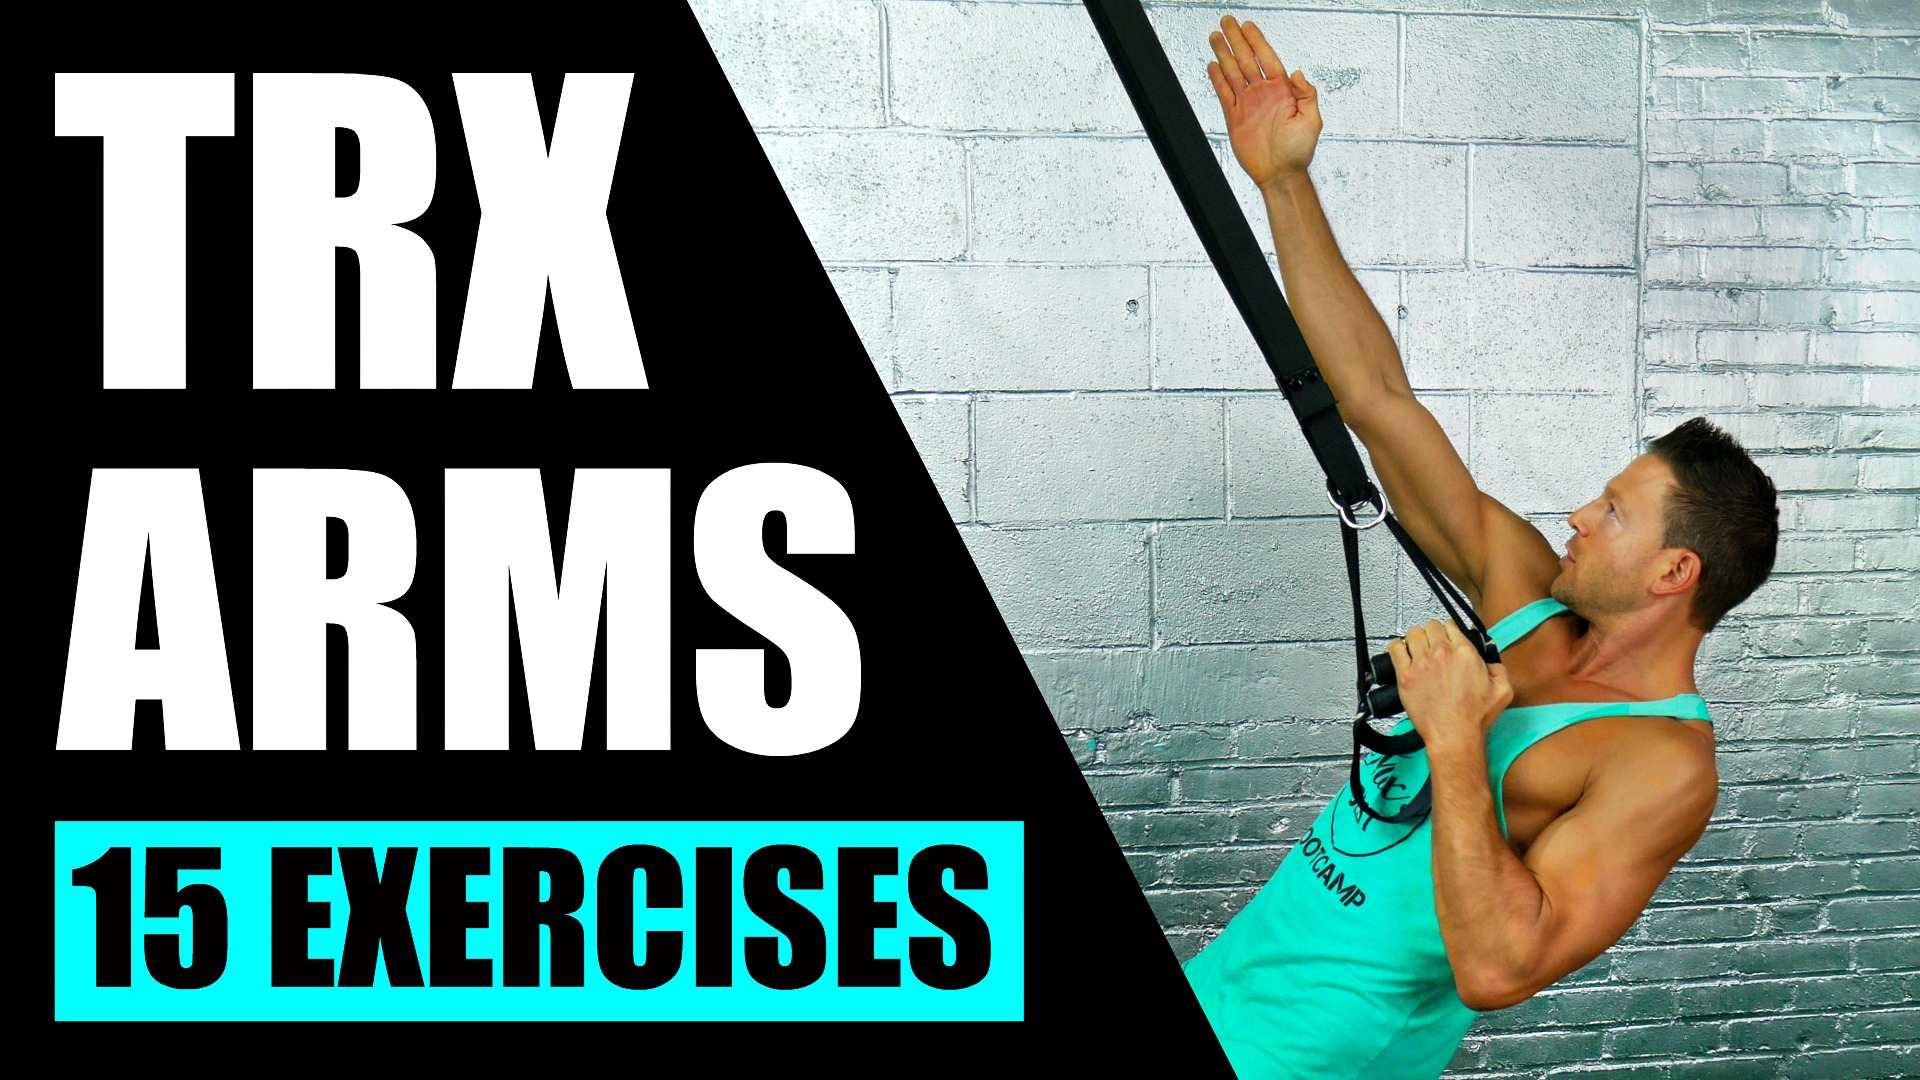 TRX exercises for arms